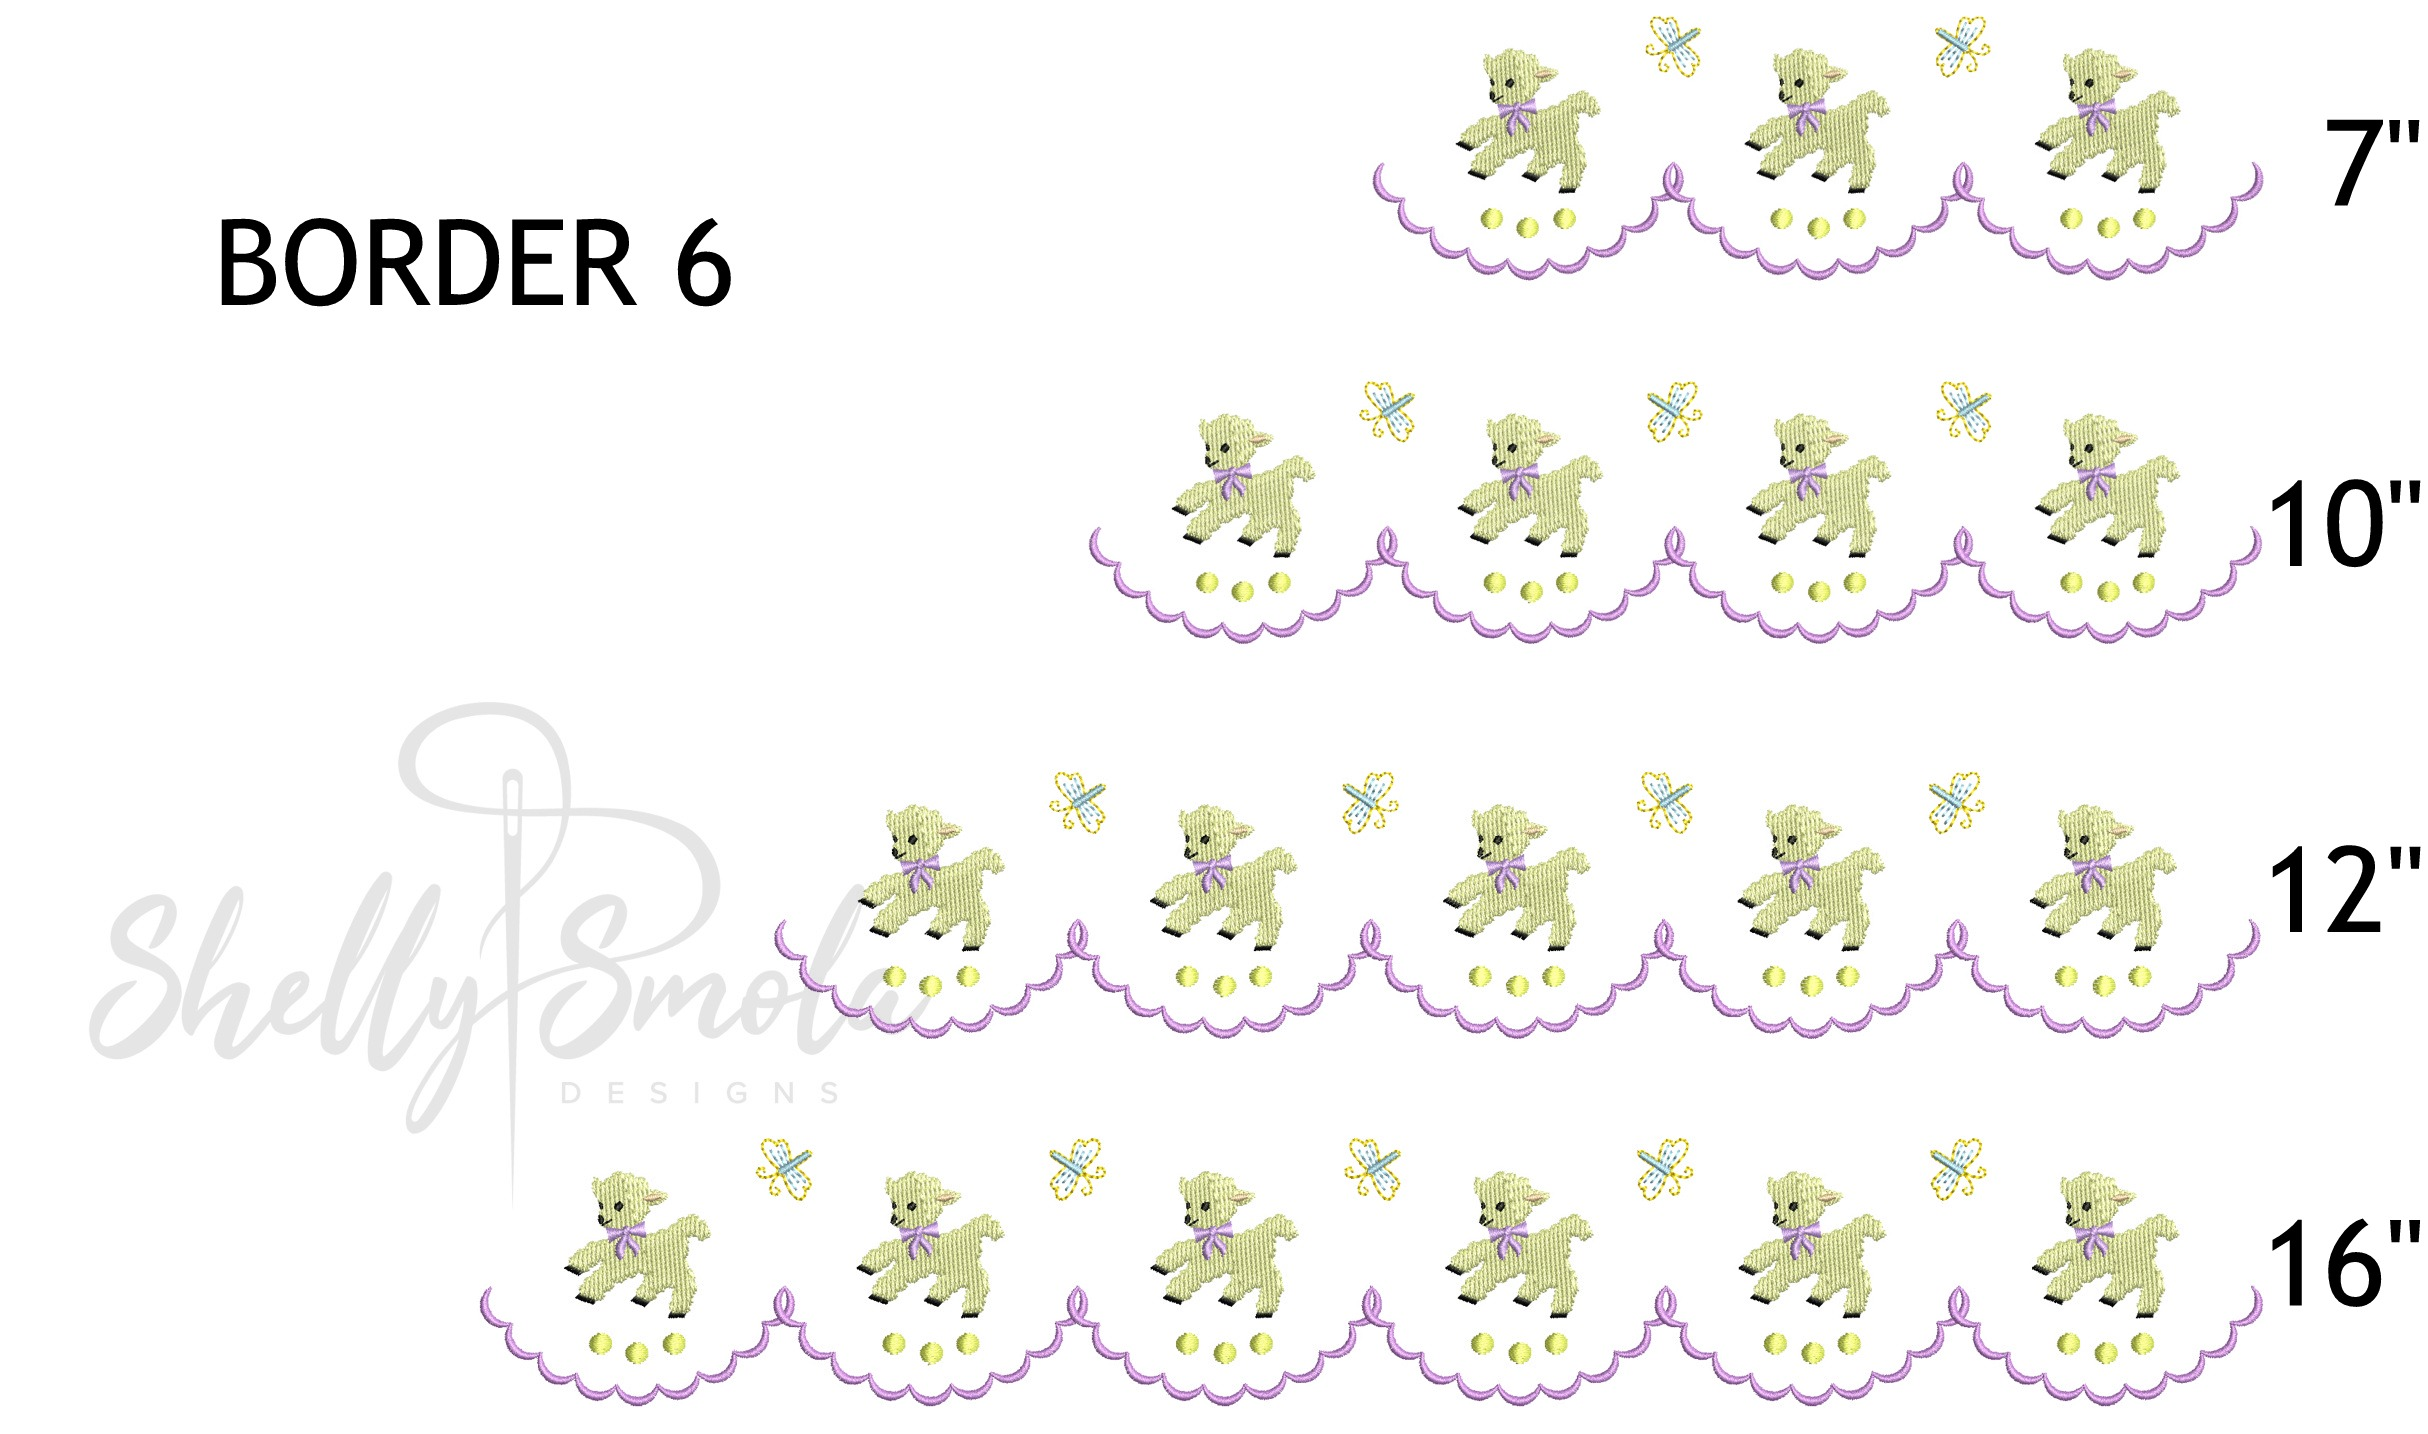 Spring Accent Borders by Shelly Smola